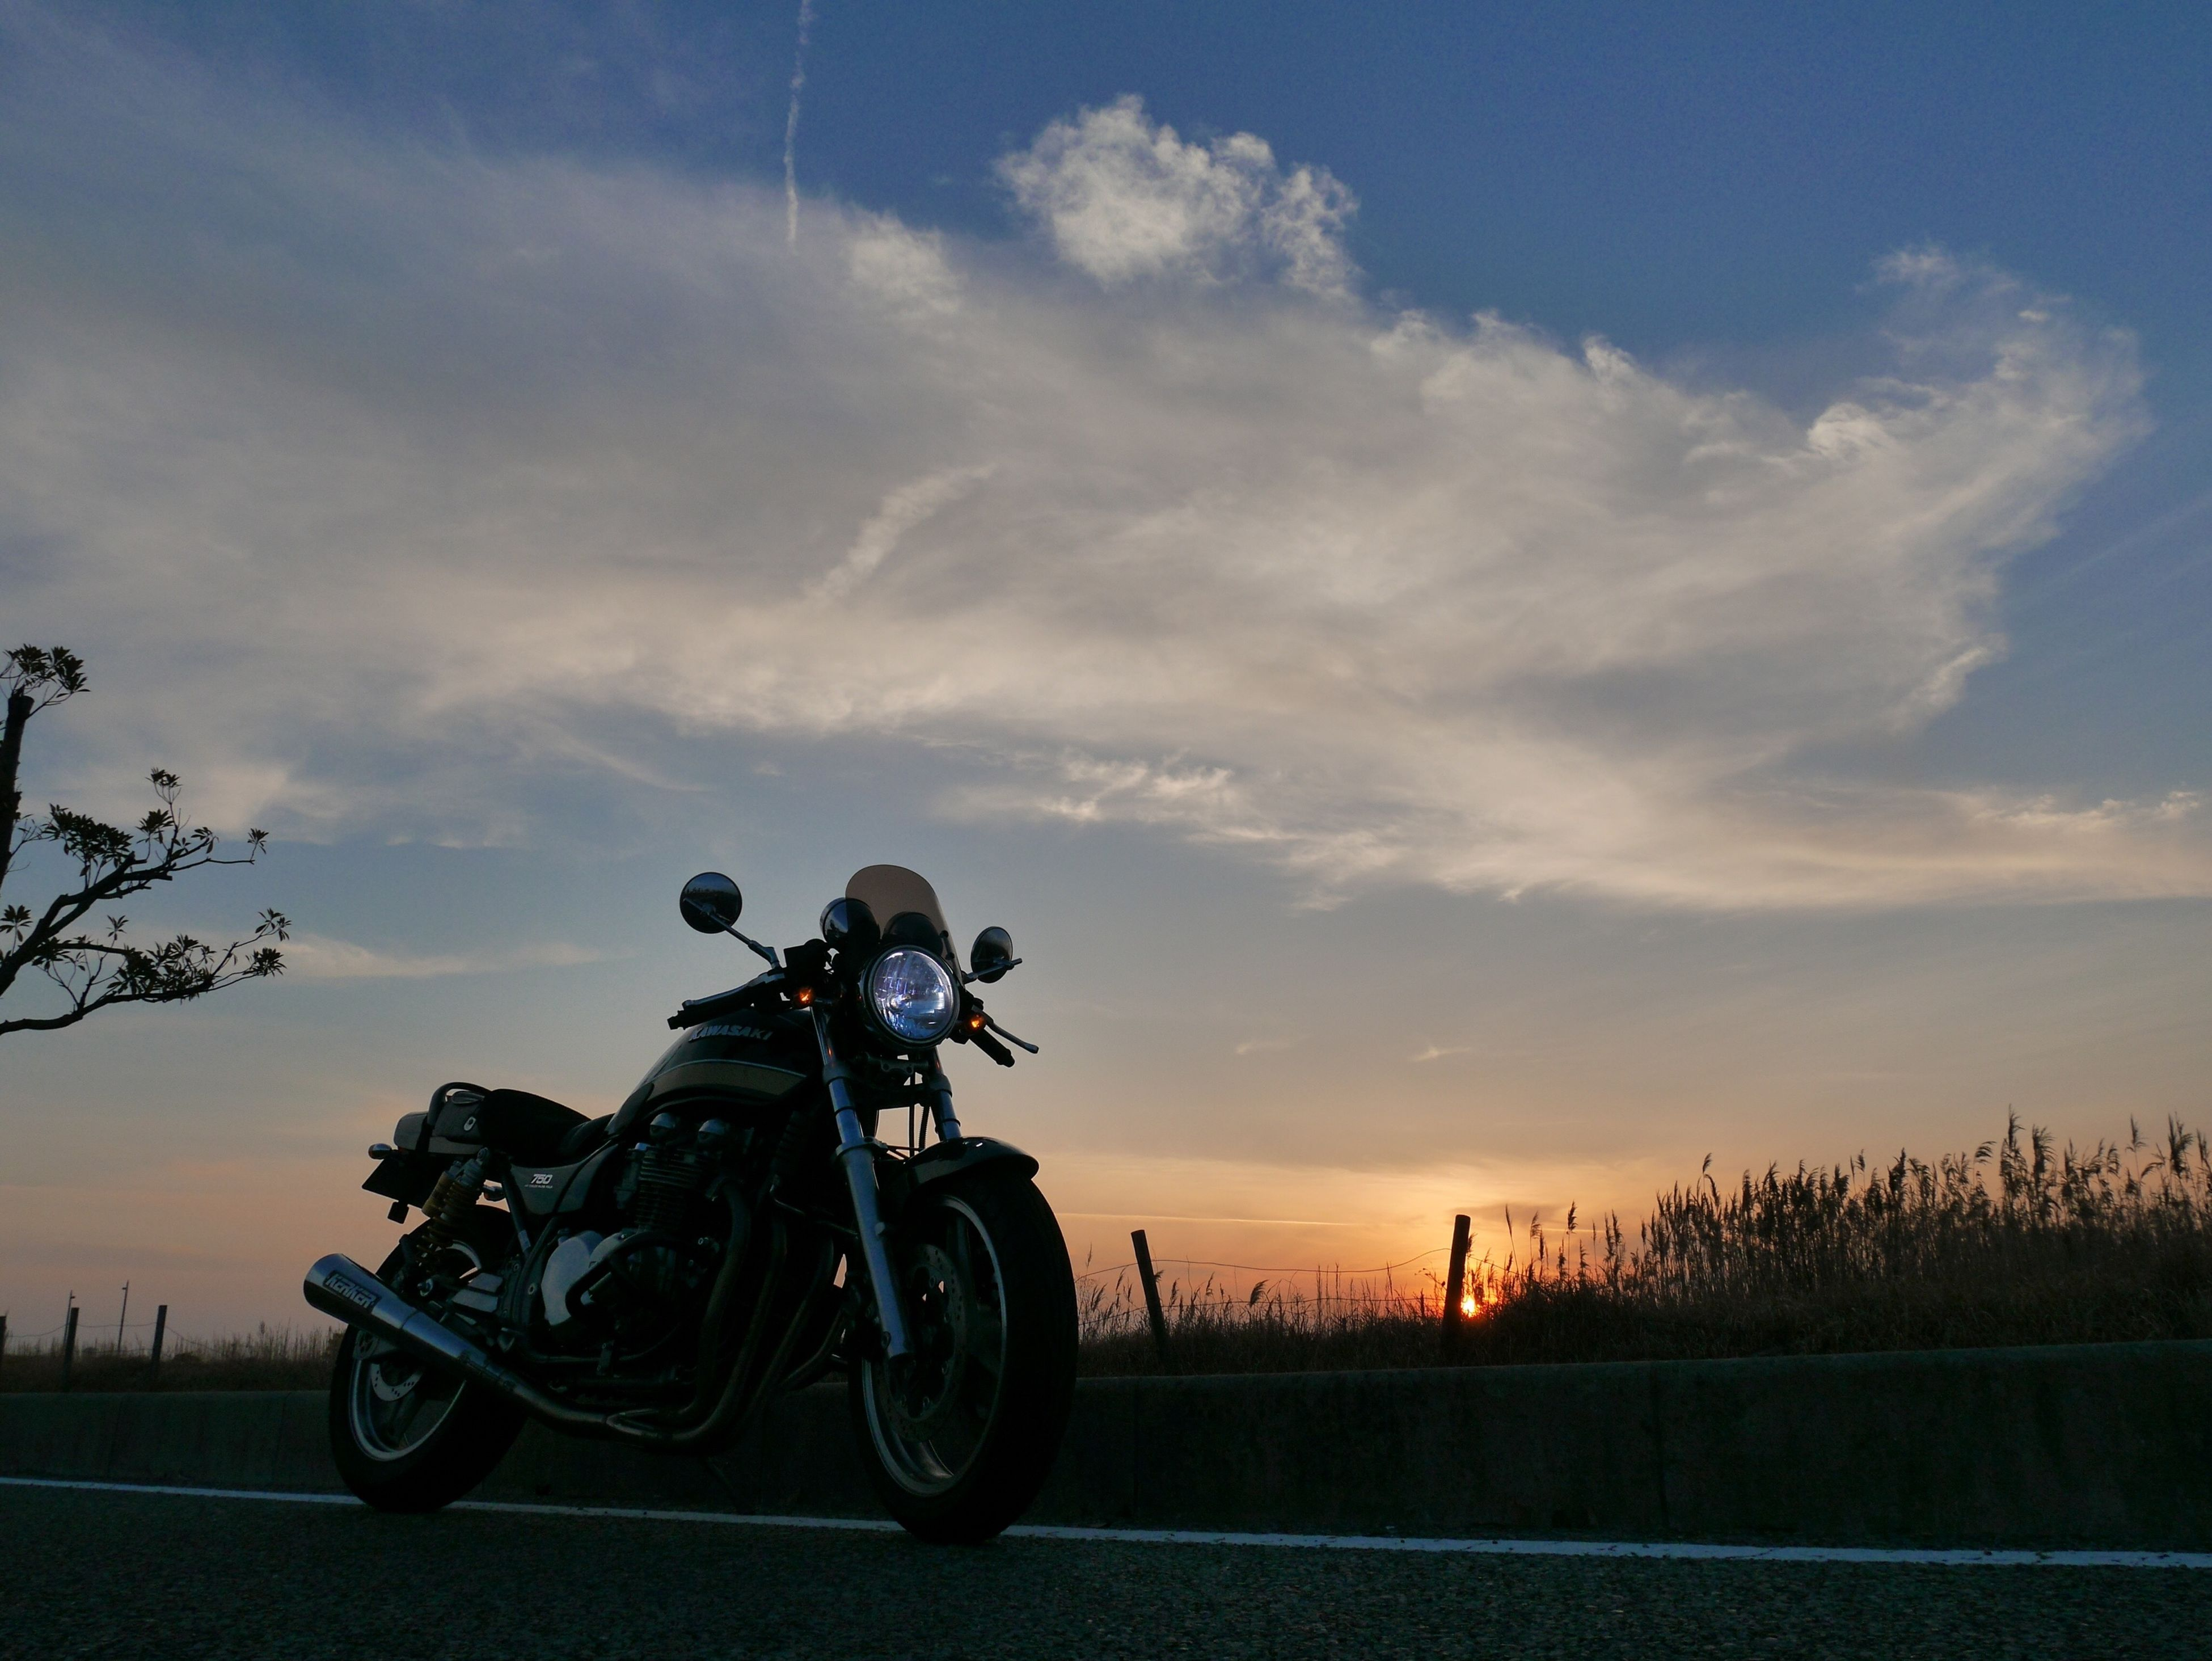 motorcycle, transportation, mode of transport, sky, sunset, cloud - sky, land vehicle, outdoors, adults only, biker, adult, people, only men, one person, headwear, day, motorcycle racing, one man only